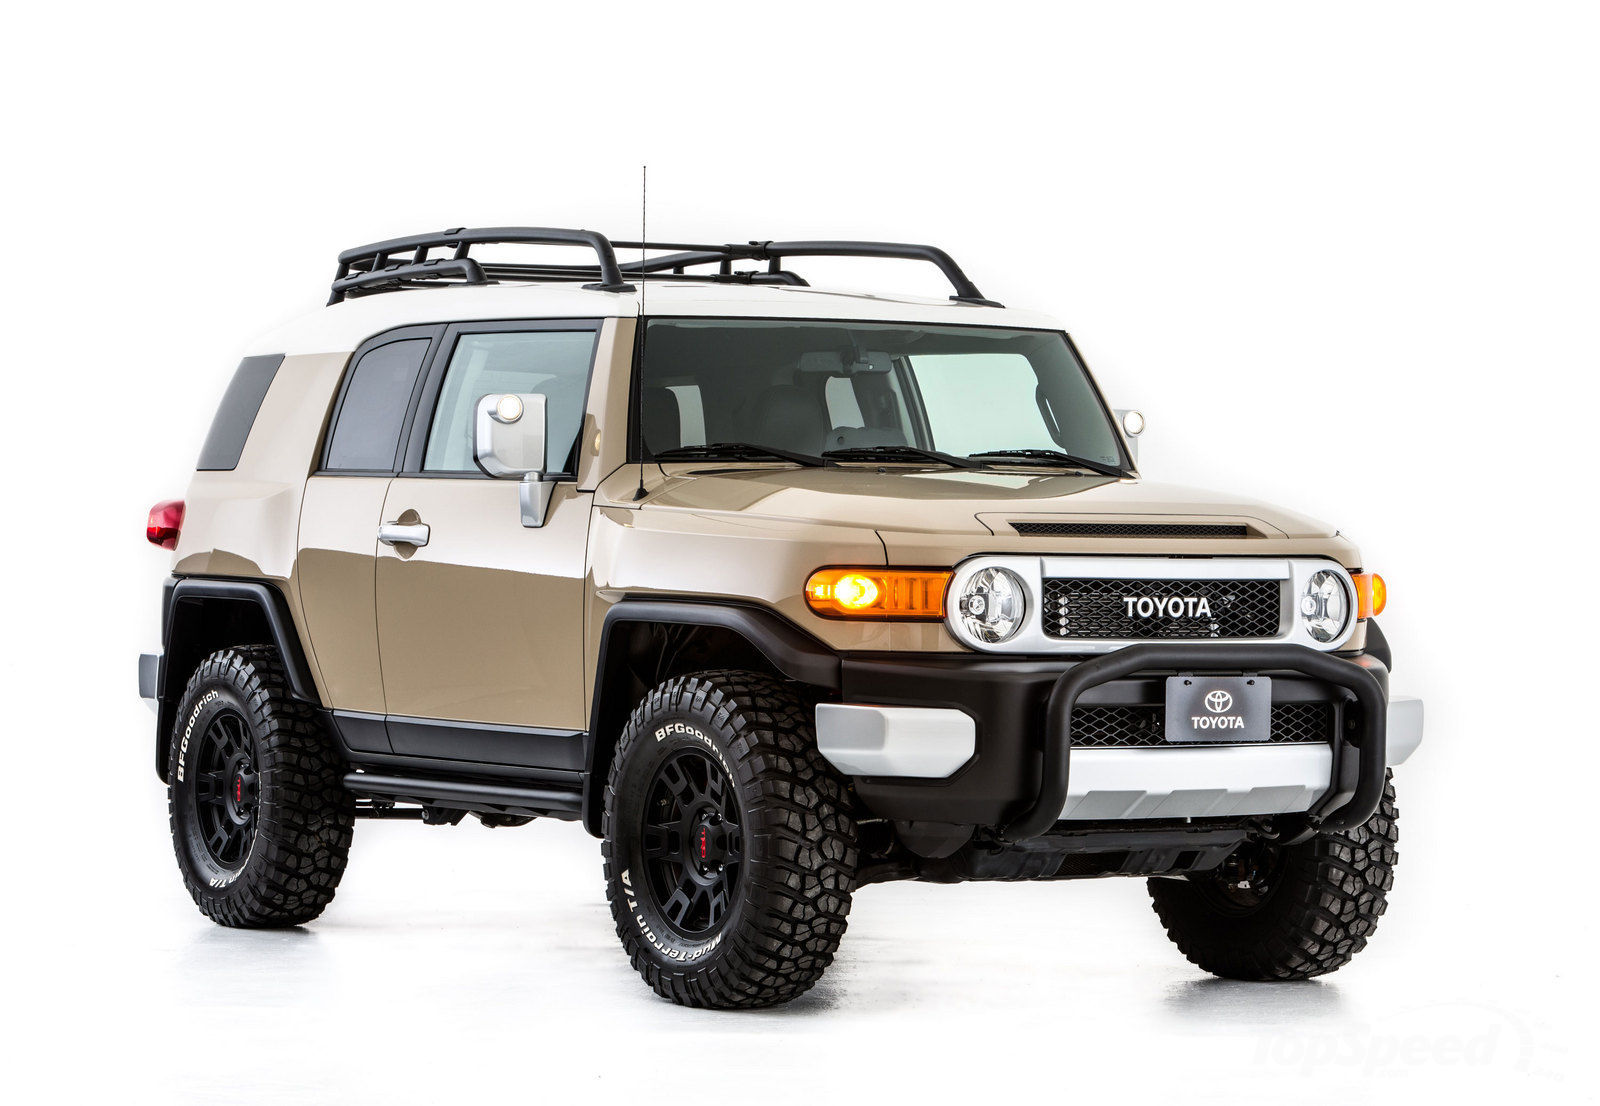 Fj Cruiser Wiring Diagram For 2013 Electrical Diagrams Toyota Land Pictures Information And Specs Auto 2011 Microphone